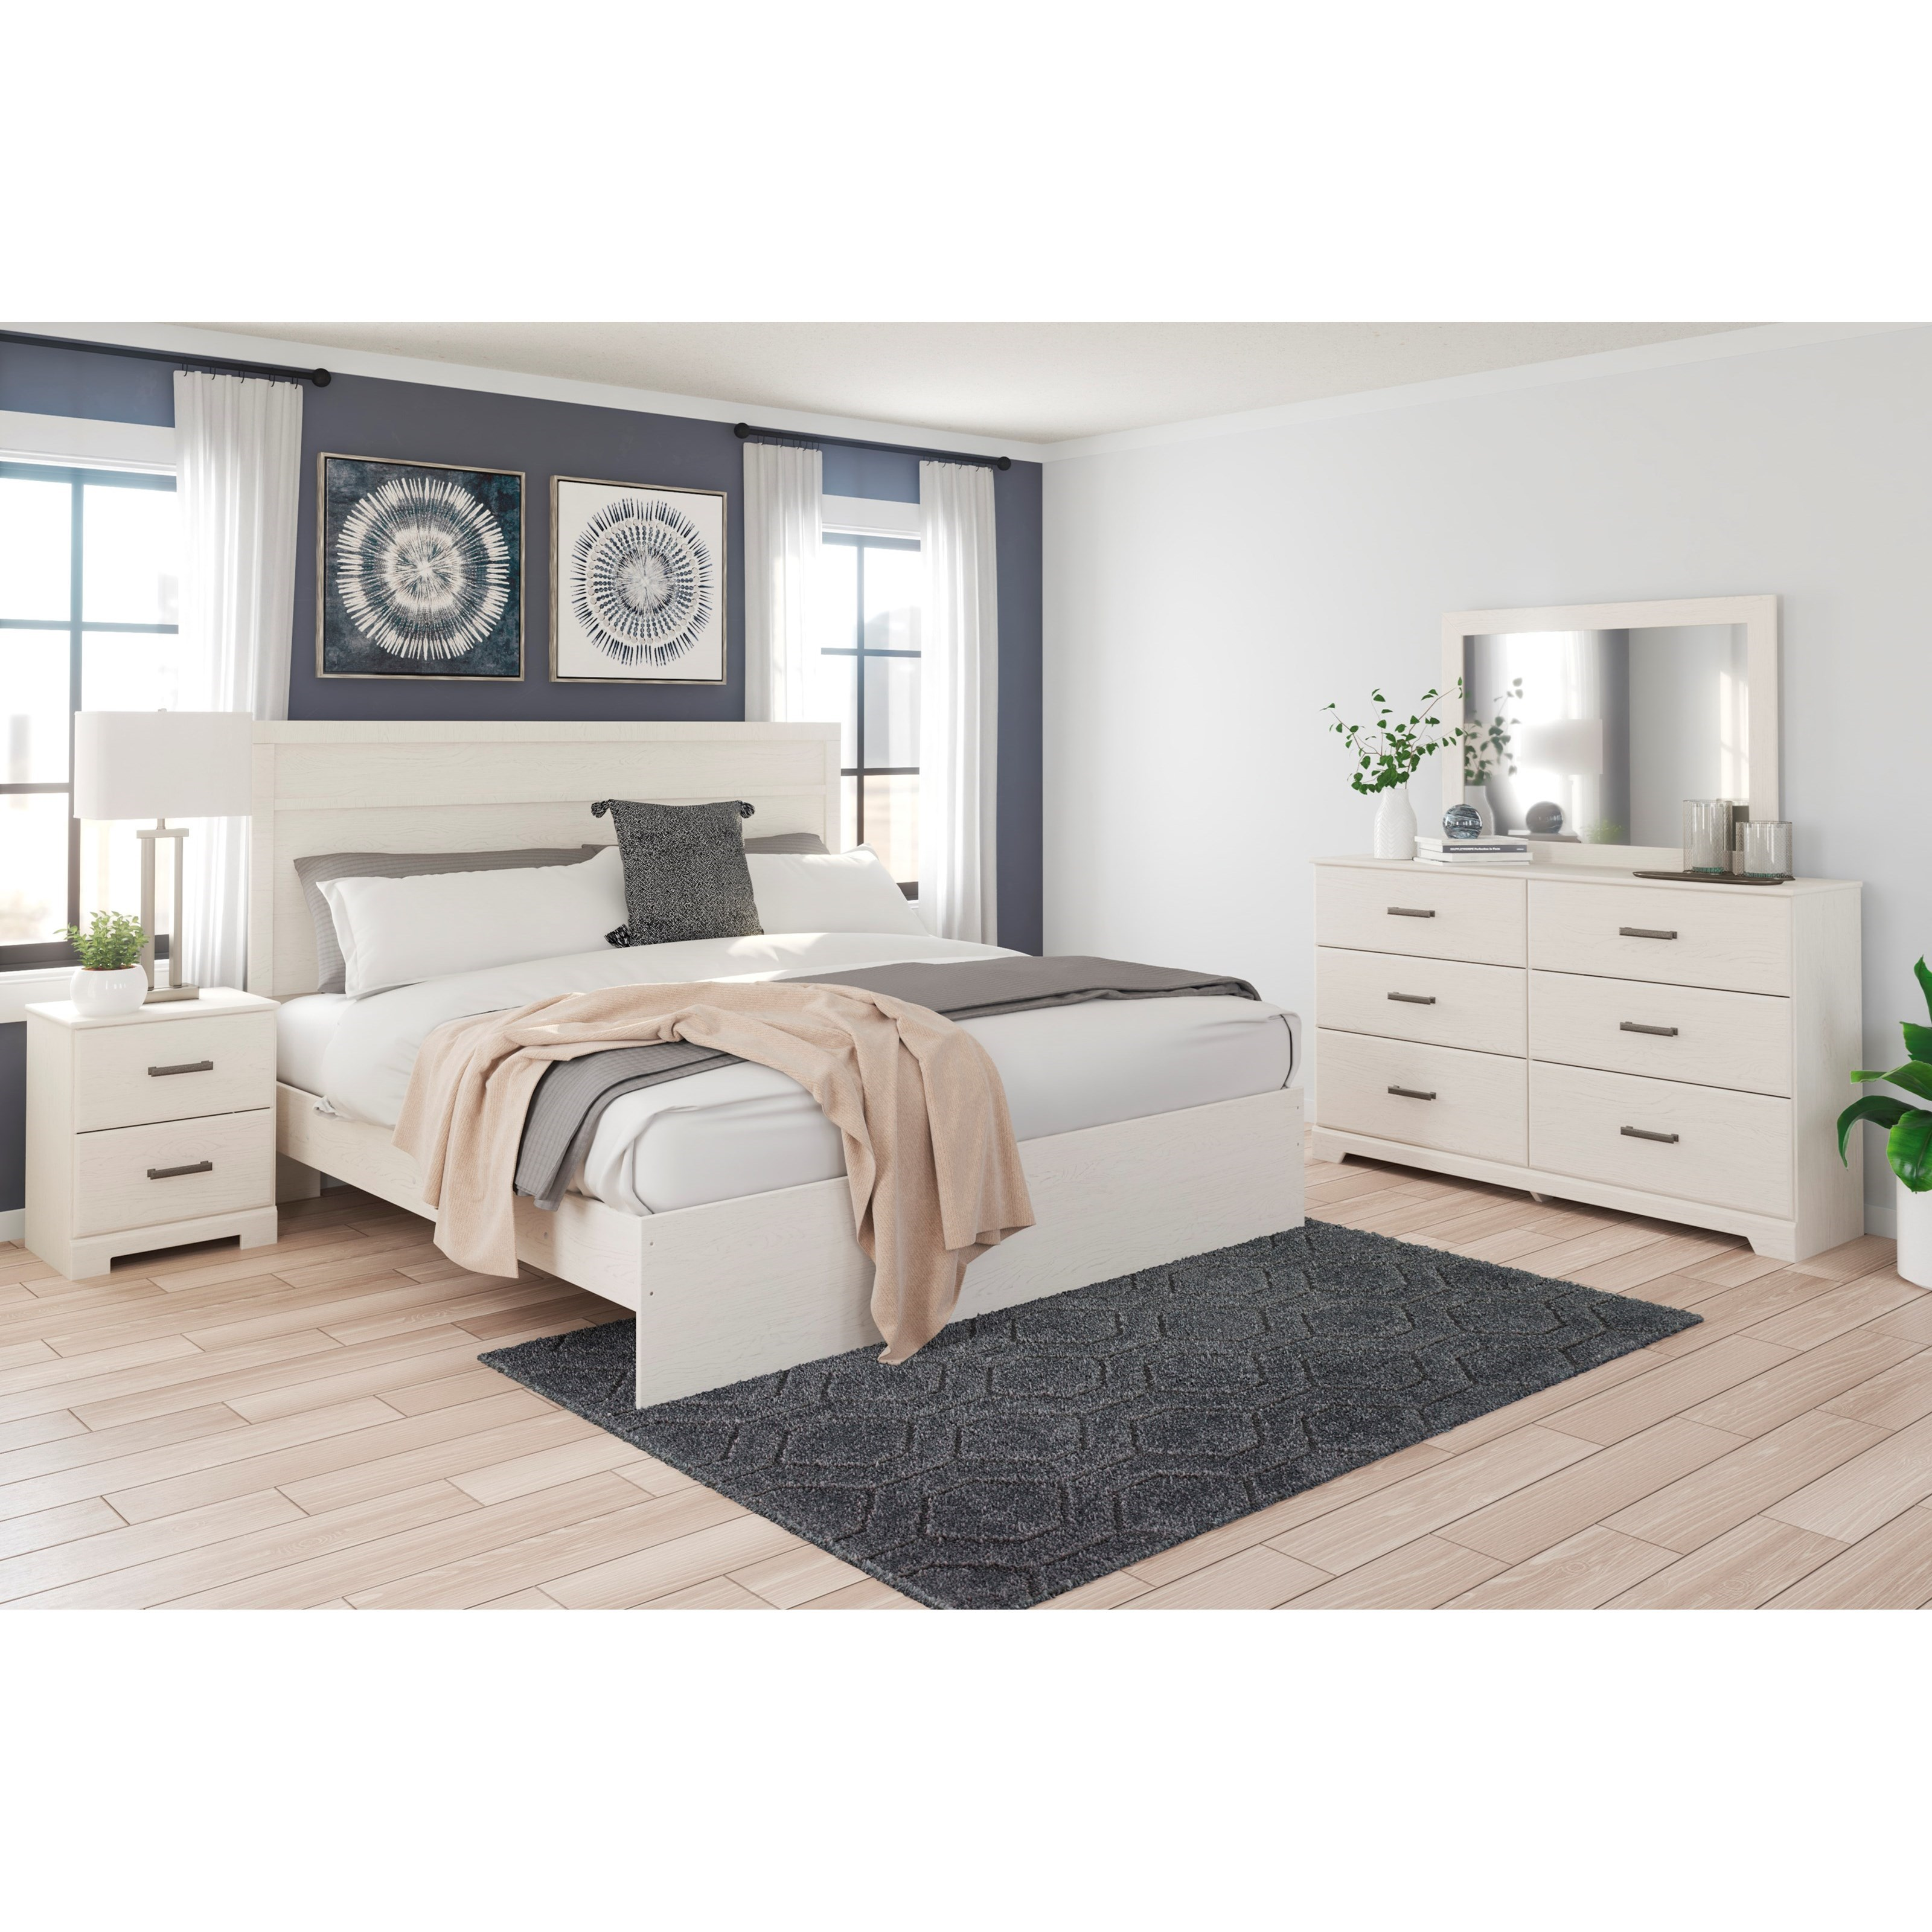 Stelsie King Bedroom Group by Signature Design by Ashley at Zak's Warehouse Clearance Center